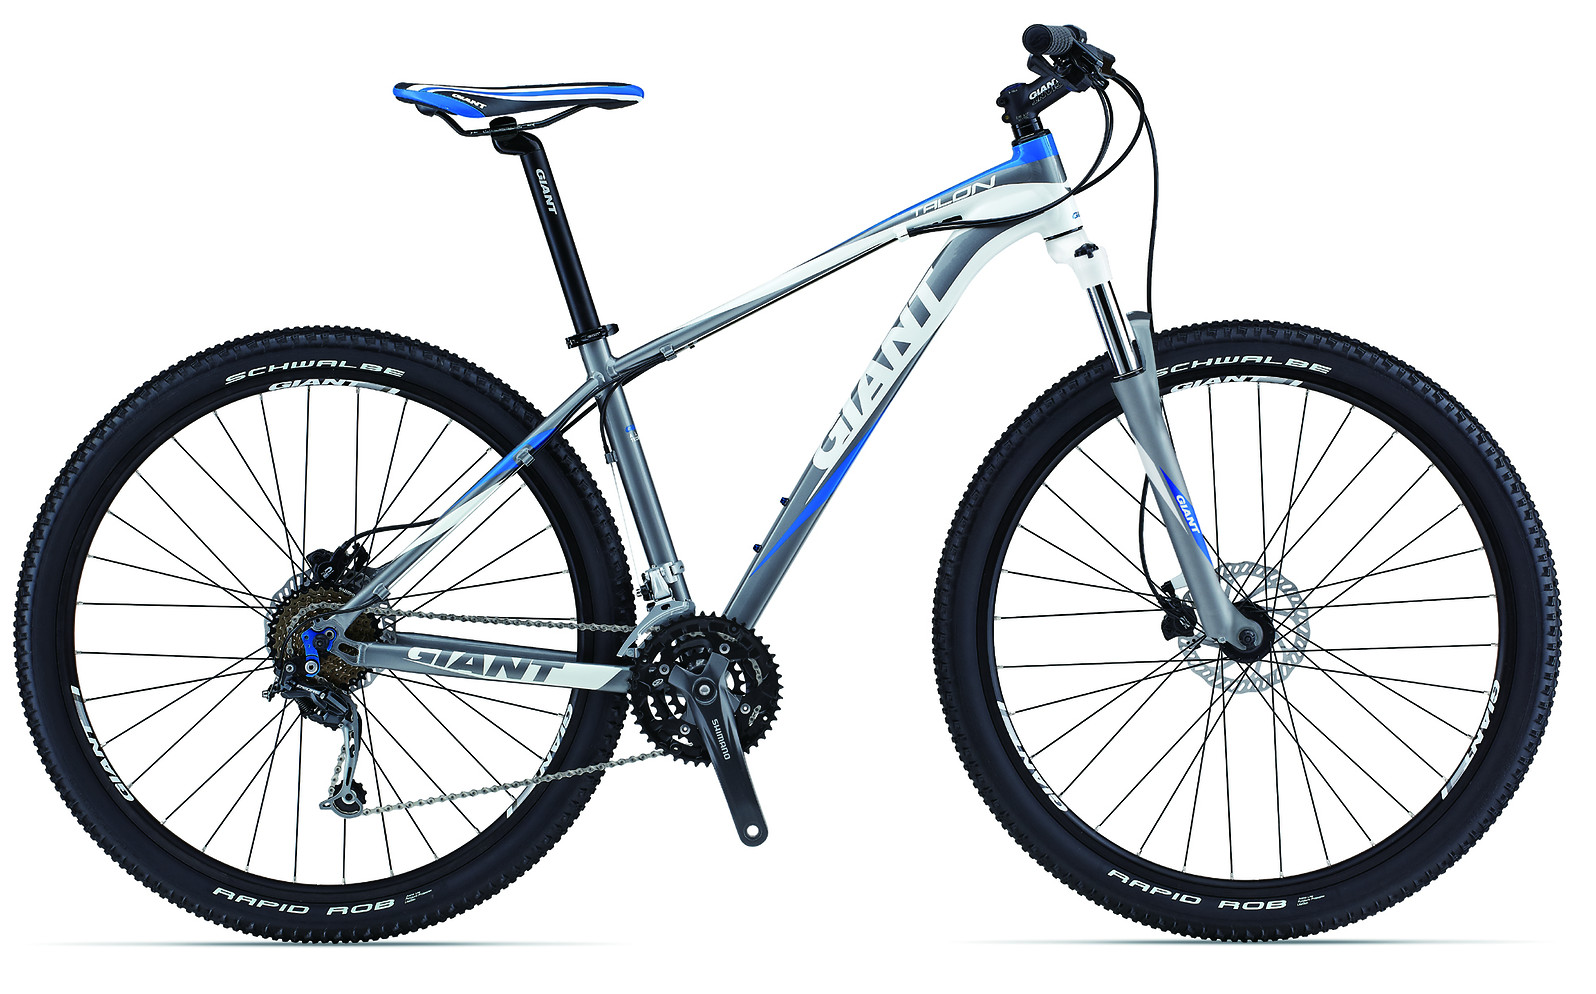 2013 Giant Talon 29er 1 Bike Talon_29er_1_v1